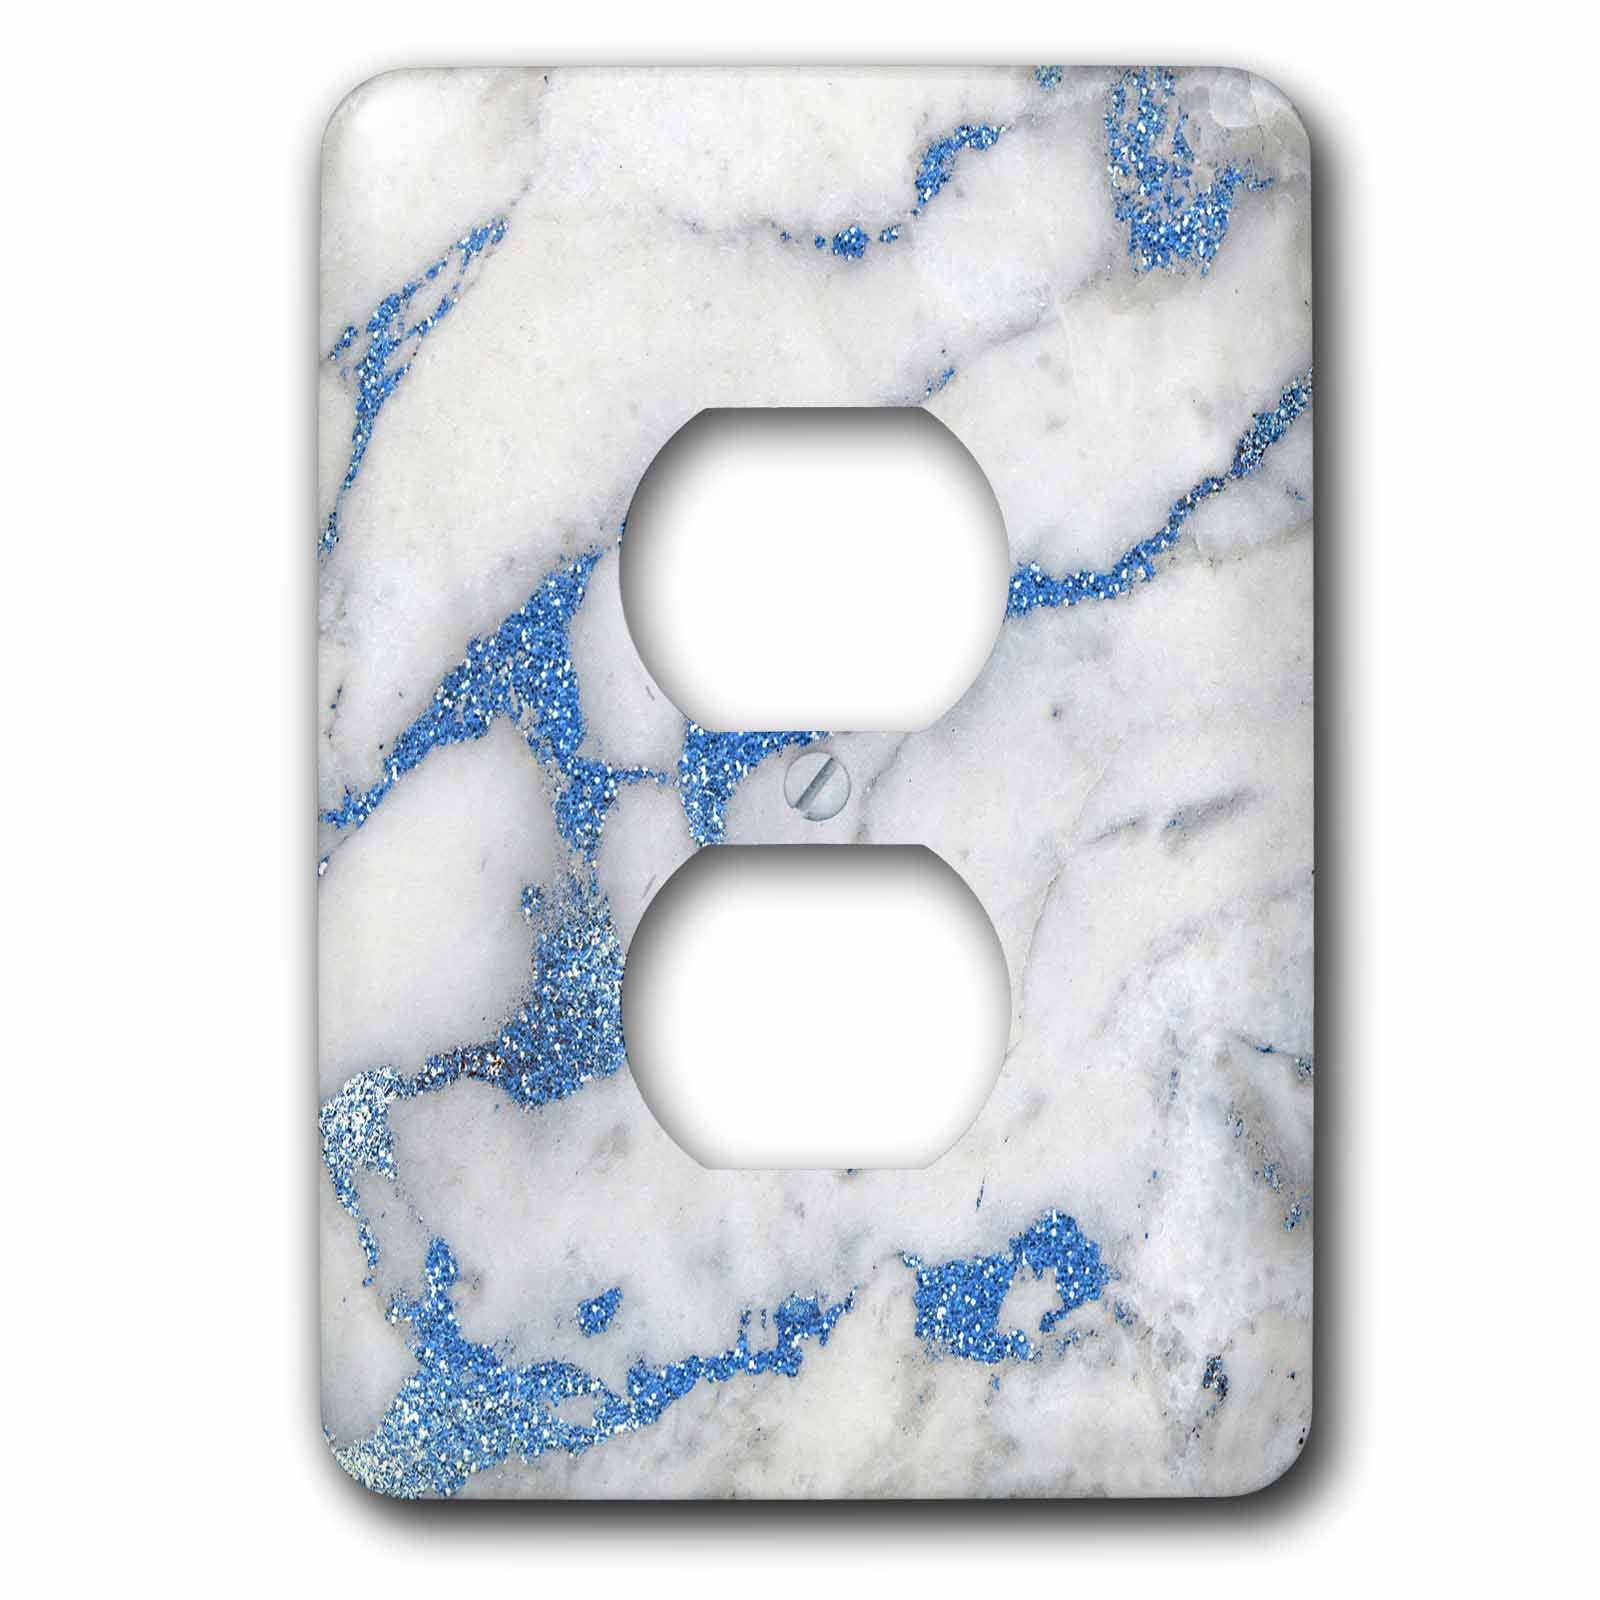 3dRose LSP_275088_6 Image of Luxury and Trendy Blue Metal Glitter Veins Gray Marble Plug Outlet Cover,